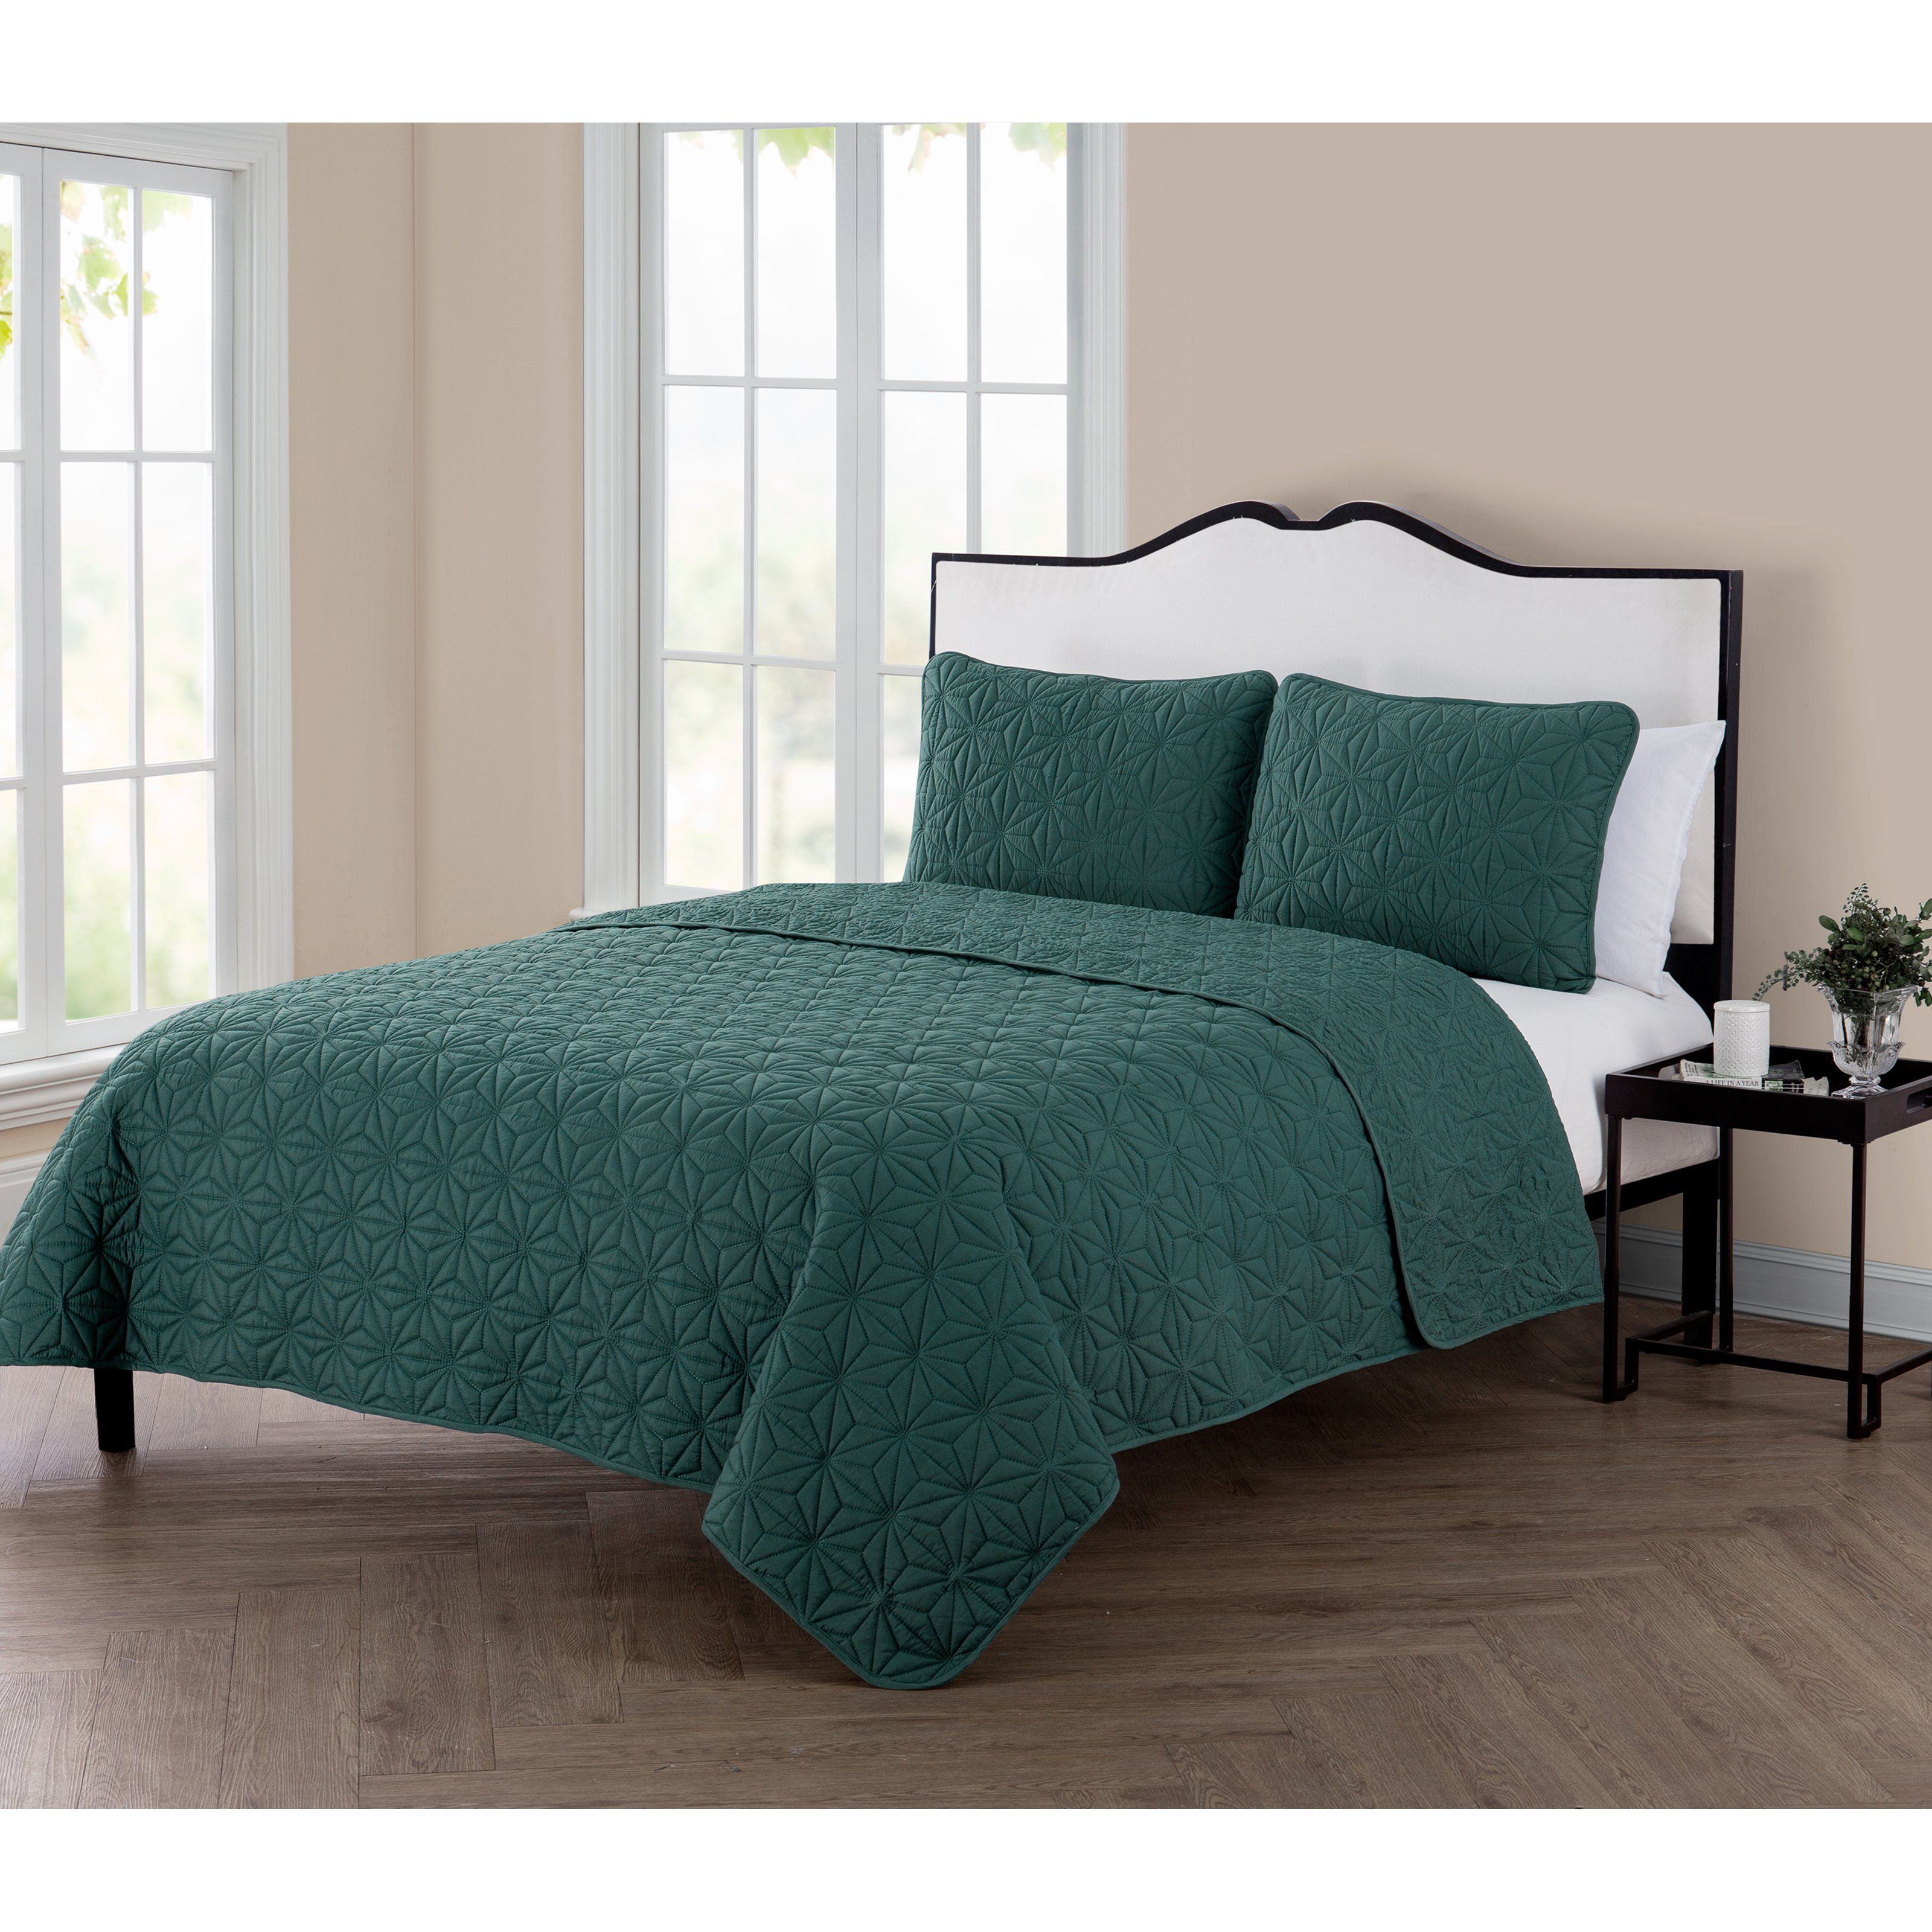 king bronwyn brianna quilts quilt com angeloferrer tracy porter